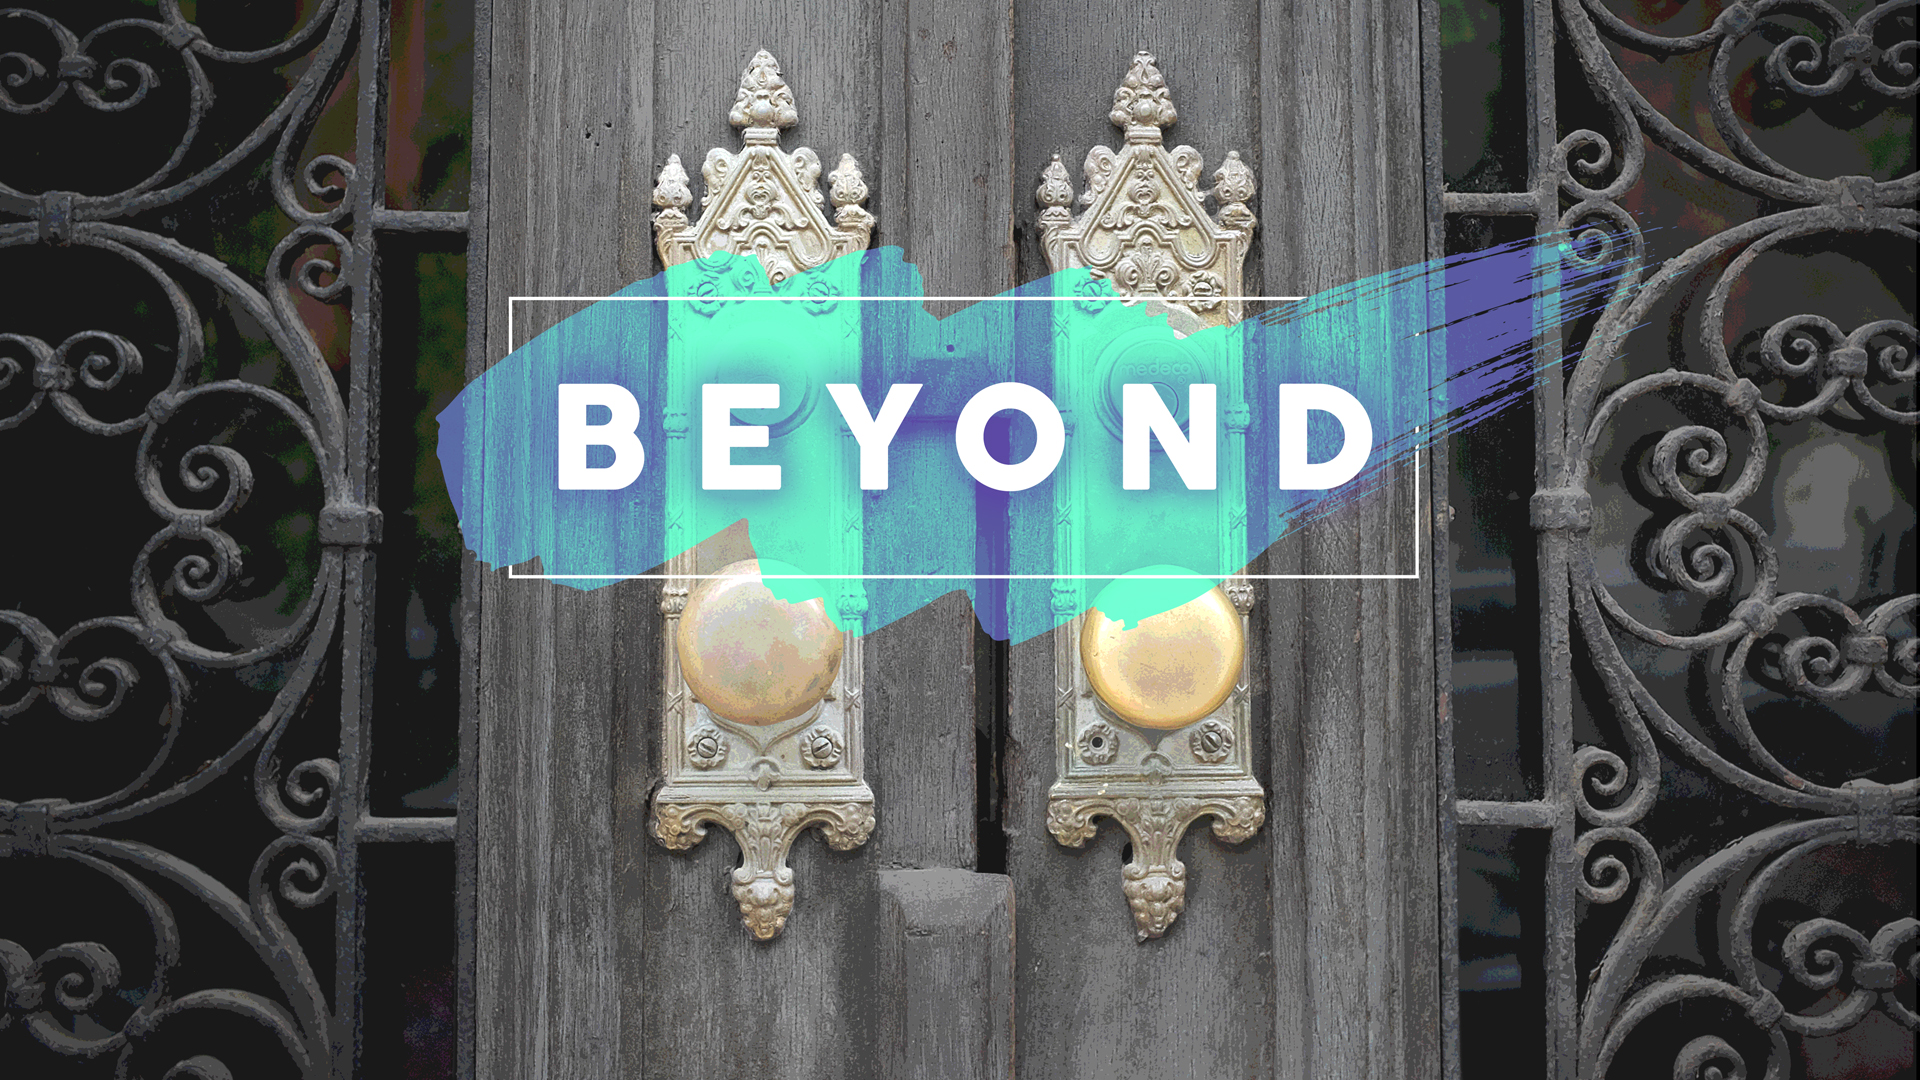 Beyond Our Plans